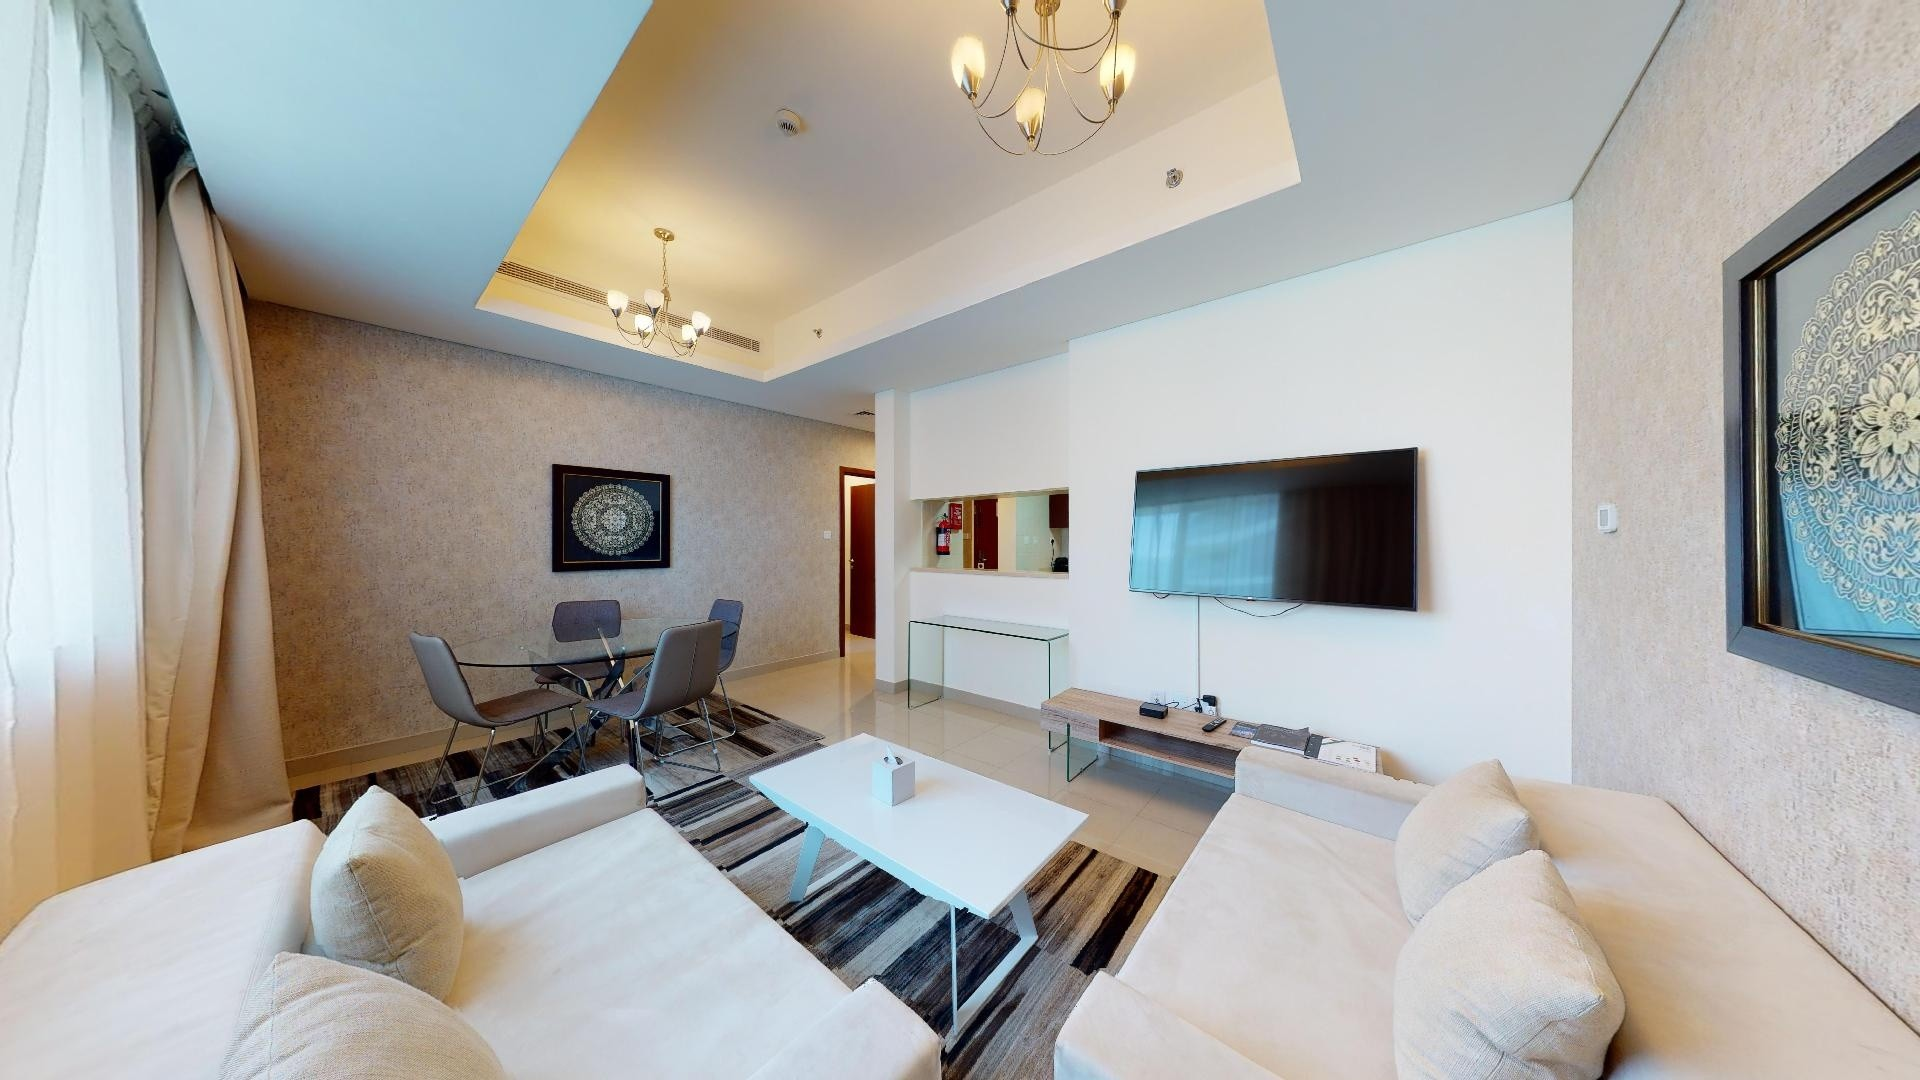 Utilities included | 12 payments | Contactless viewings